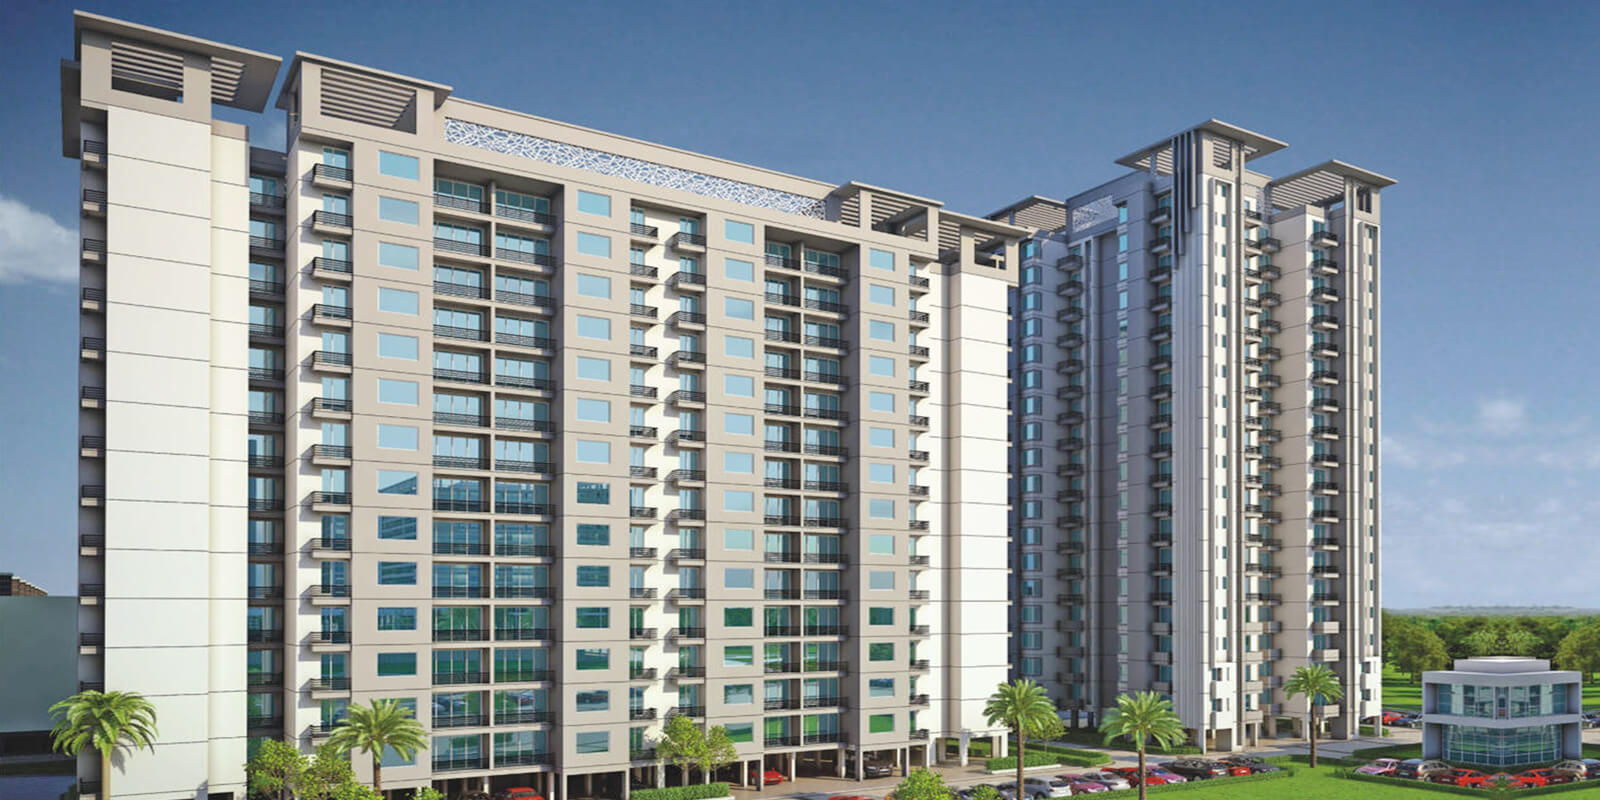 paarth infrabuild goldfinch state project large image1